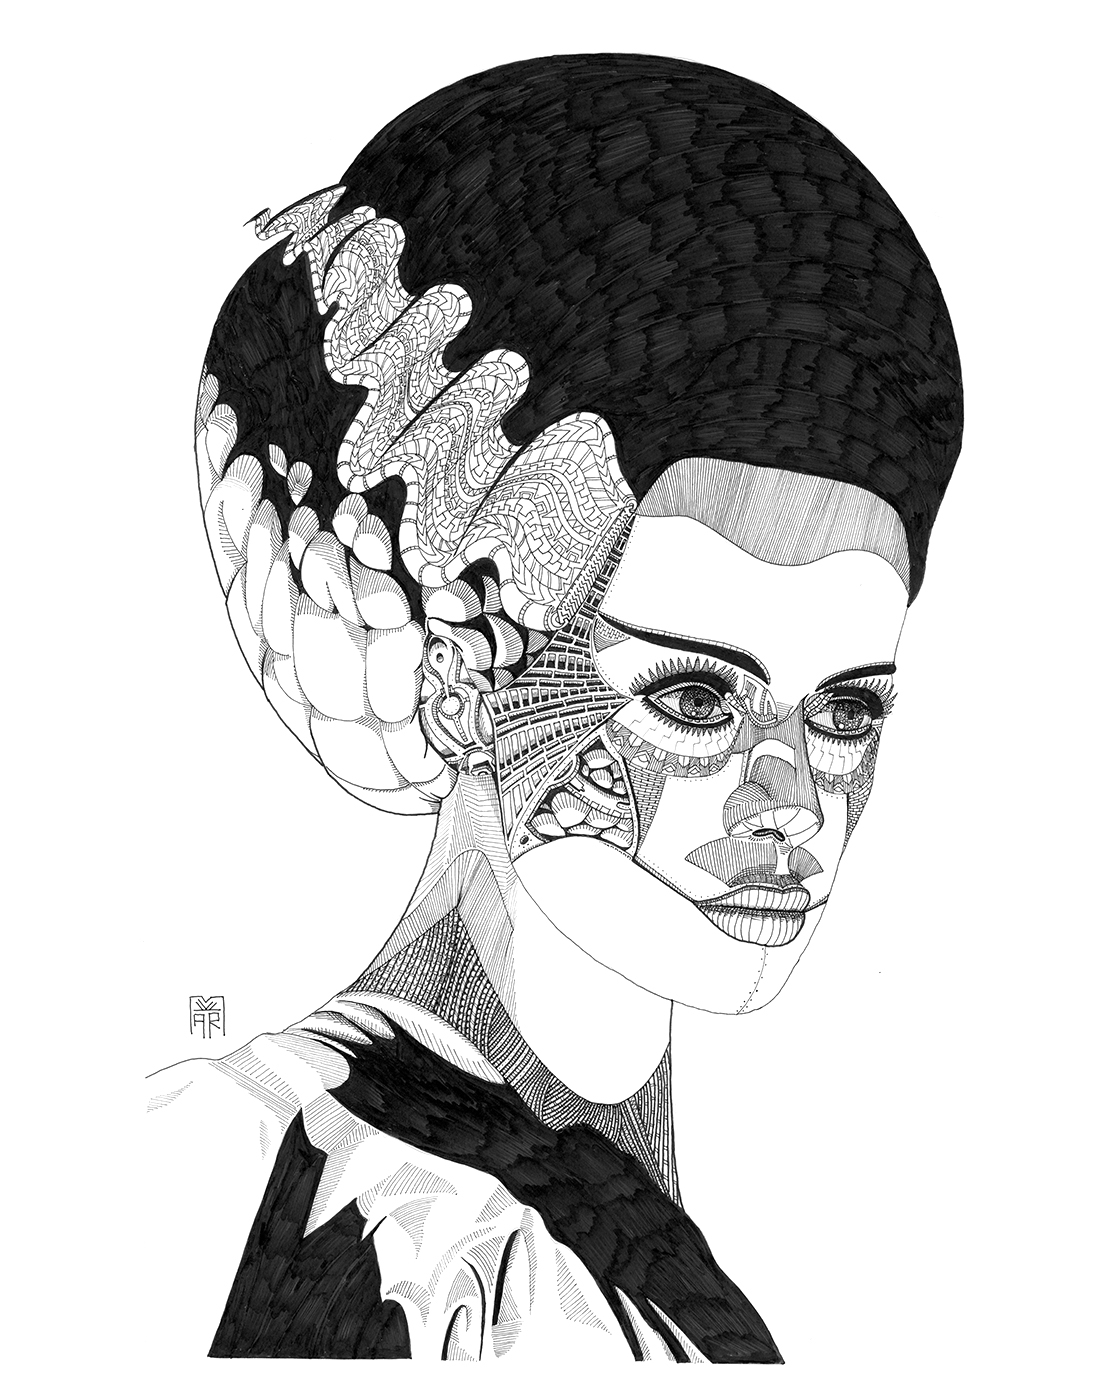 julienmarty brideoffrankenstein1